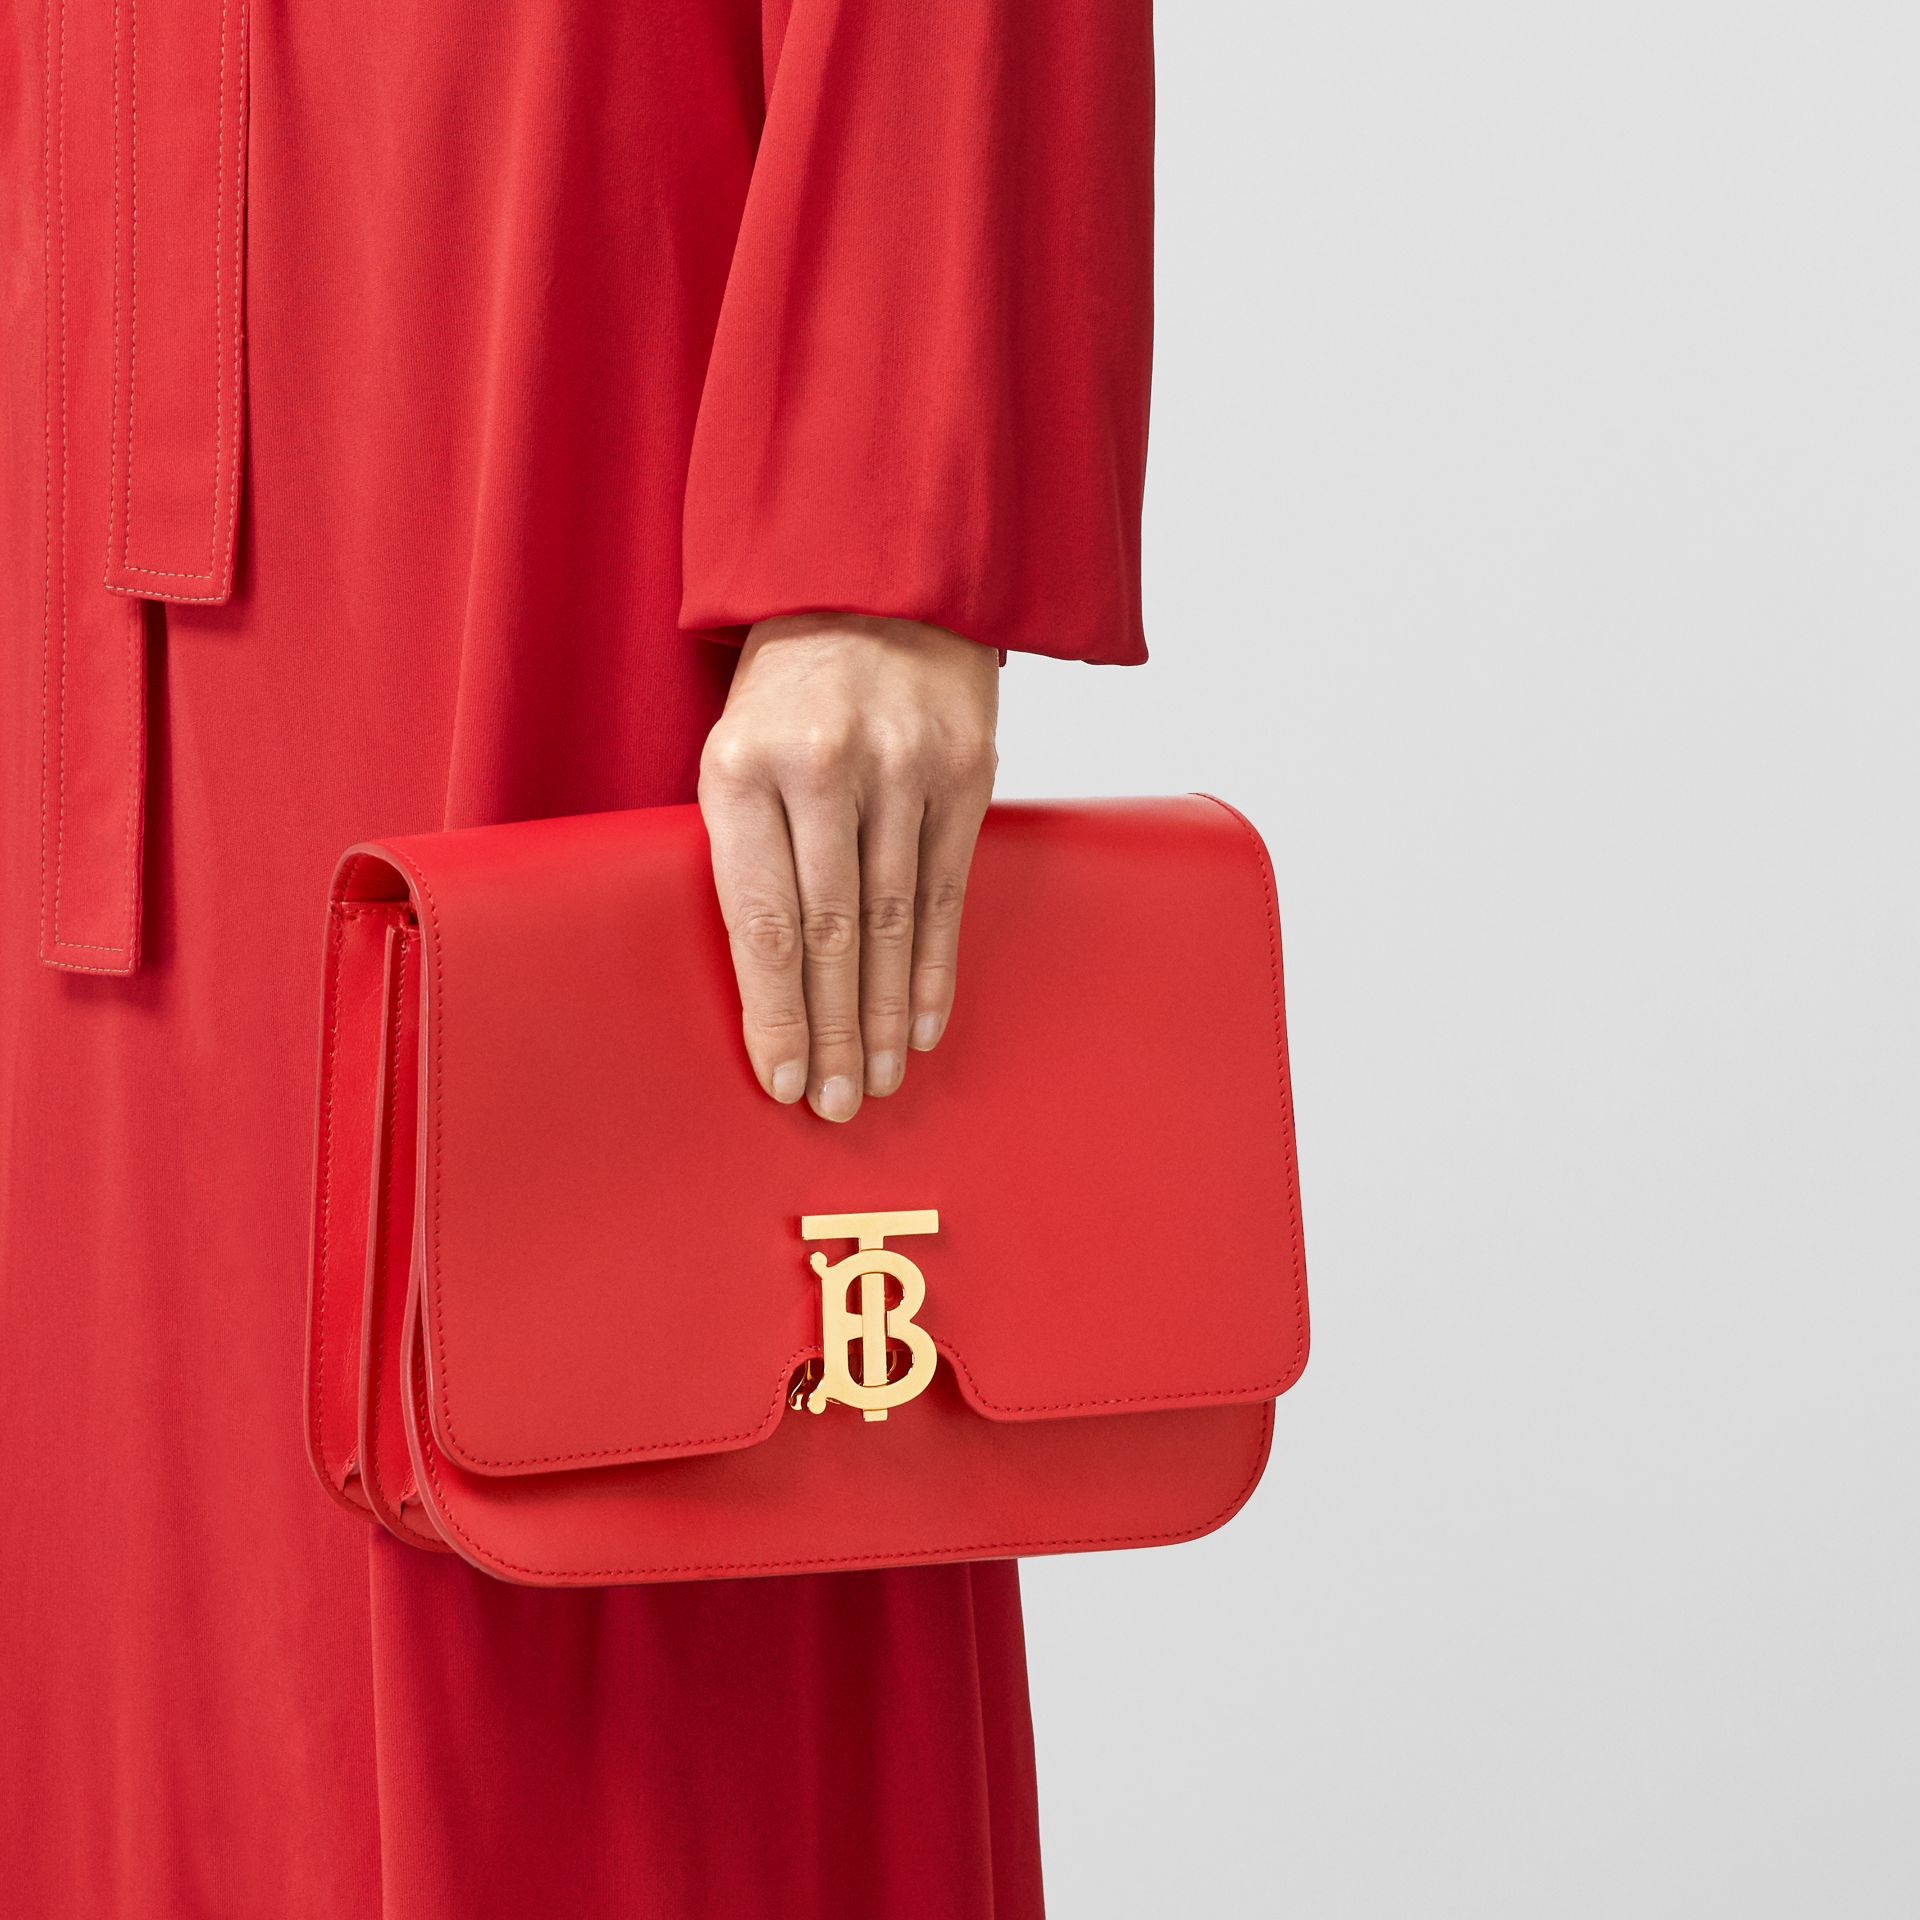 Medium Leather TB Bag in Bright Red - Women | Burberry - gallery image 8